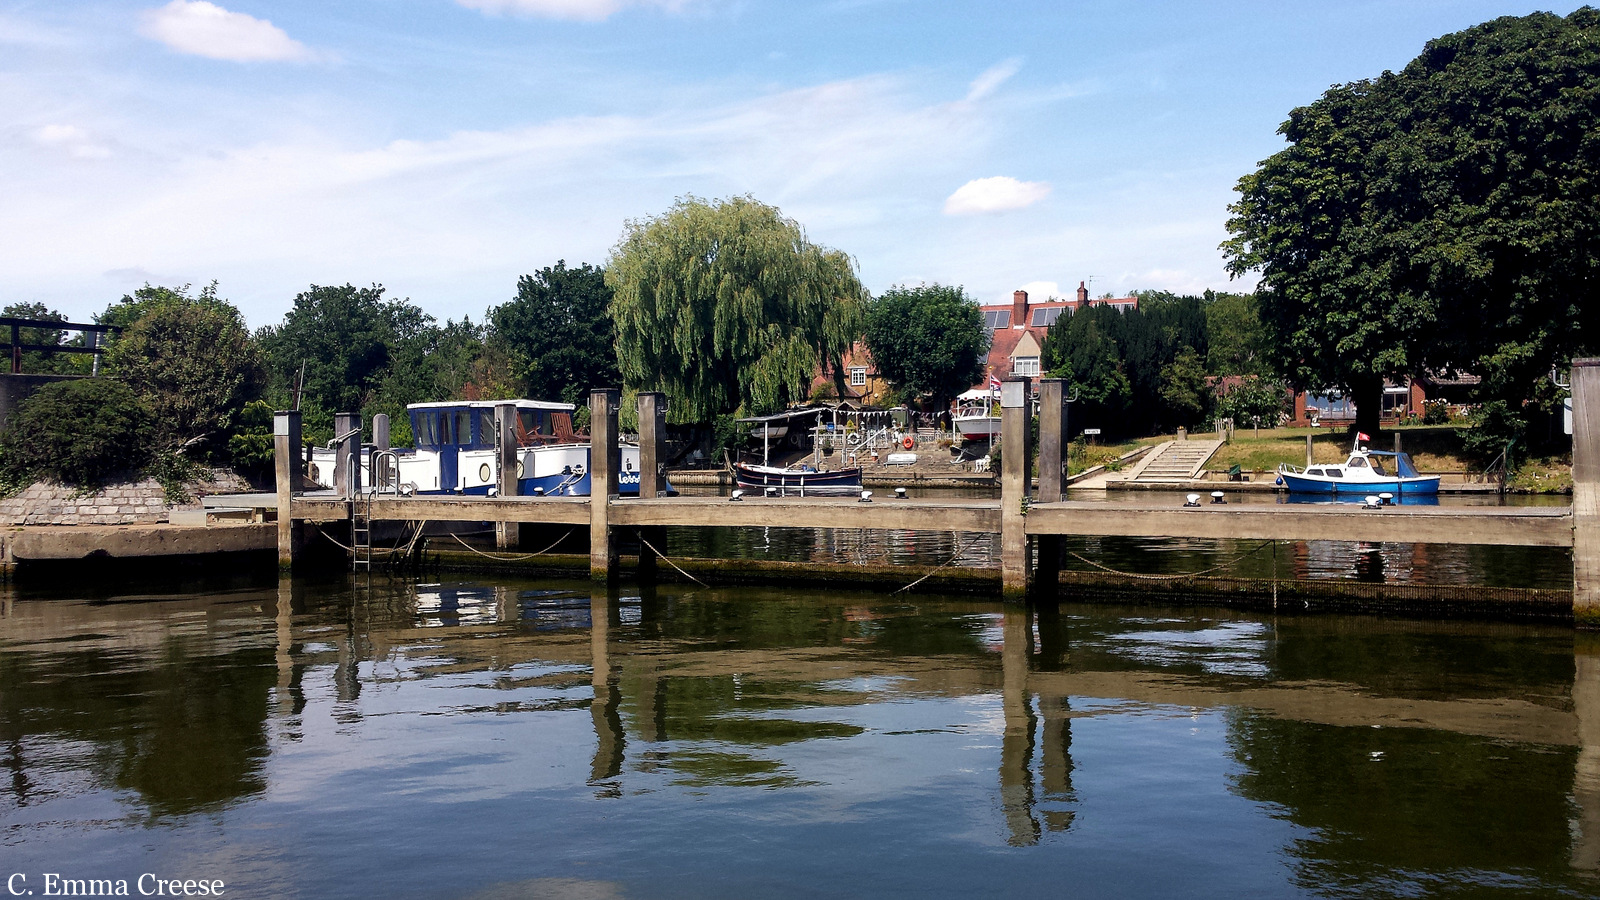 Things to do in Runnymede: take a boat ride along the Thames River